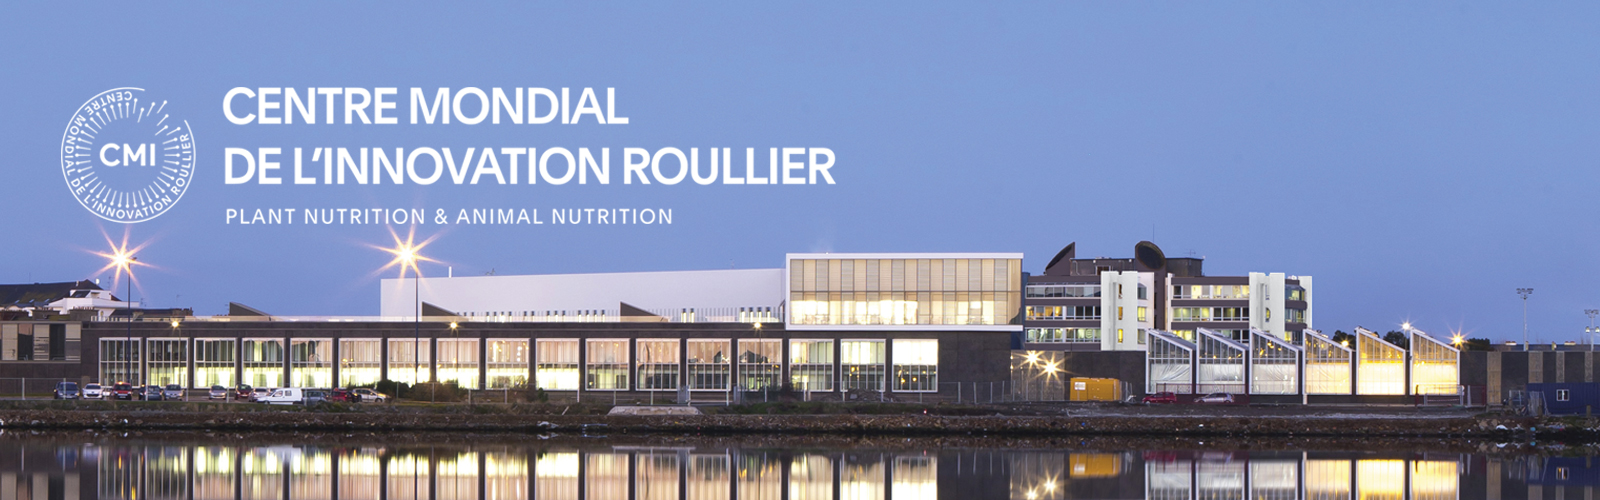 Centre Mondial de l'Innovation Roullier